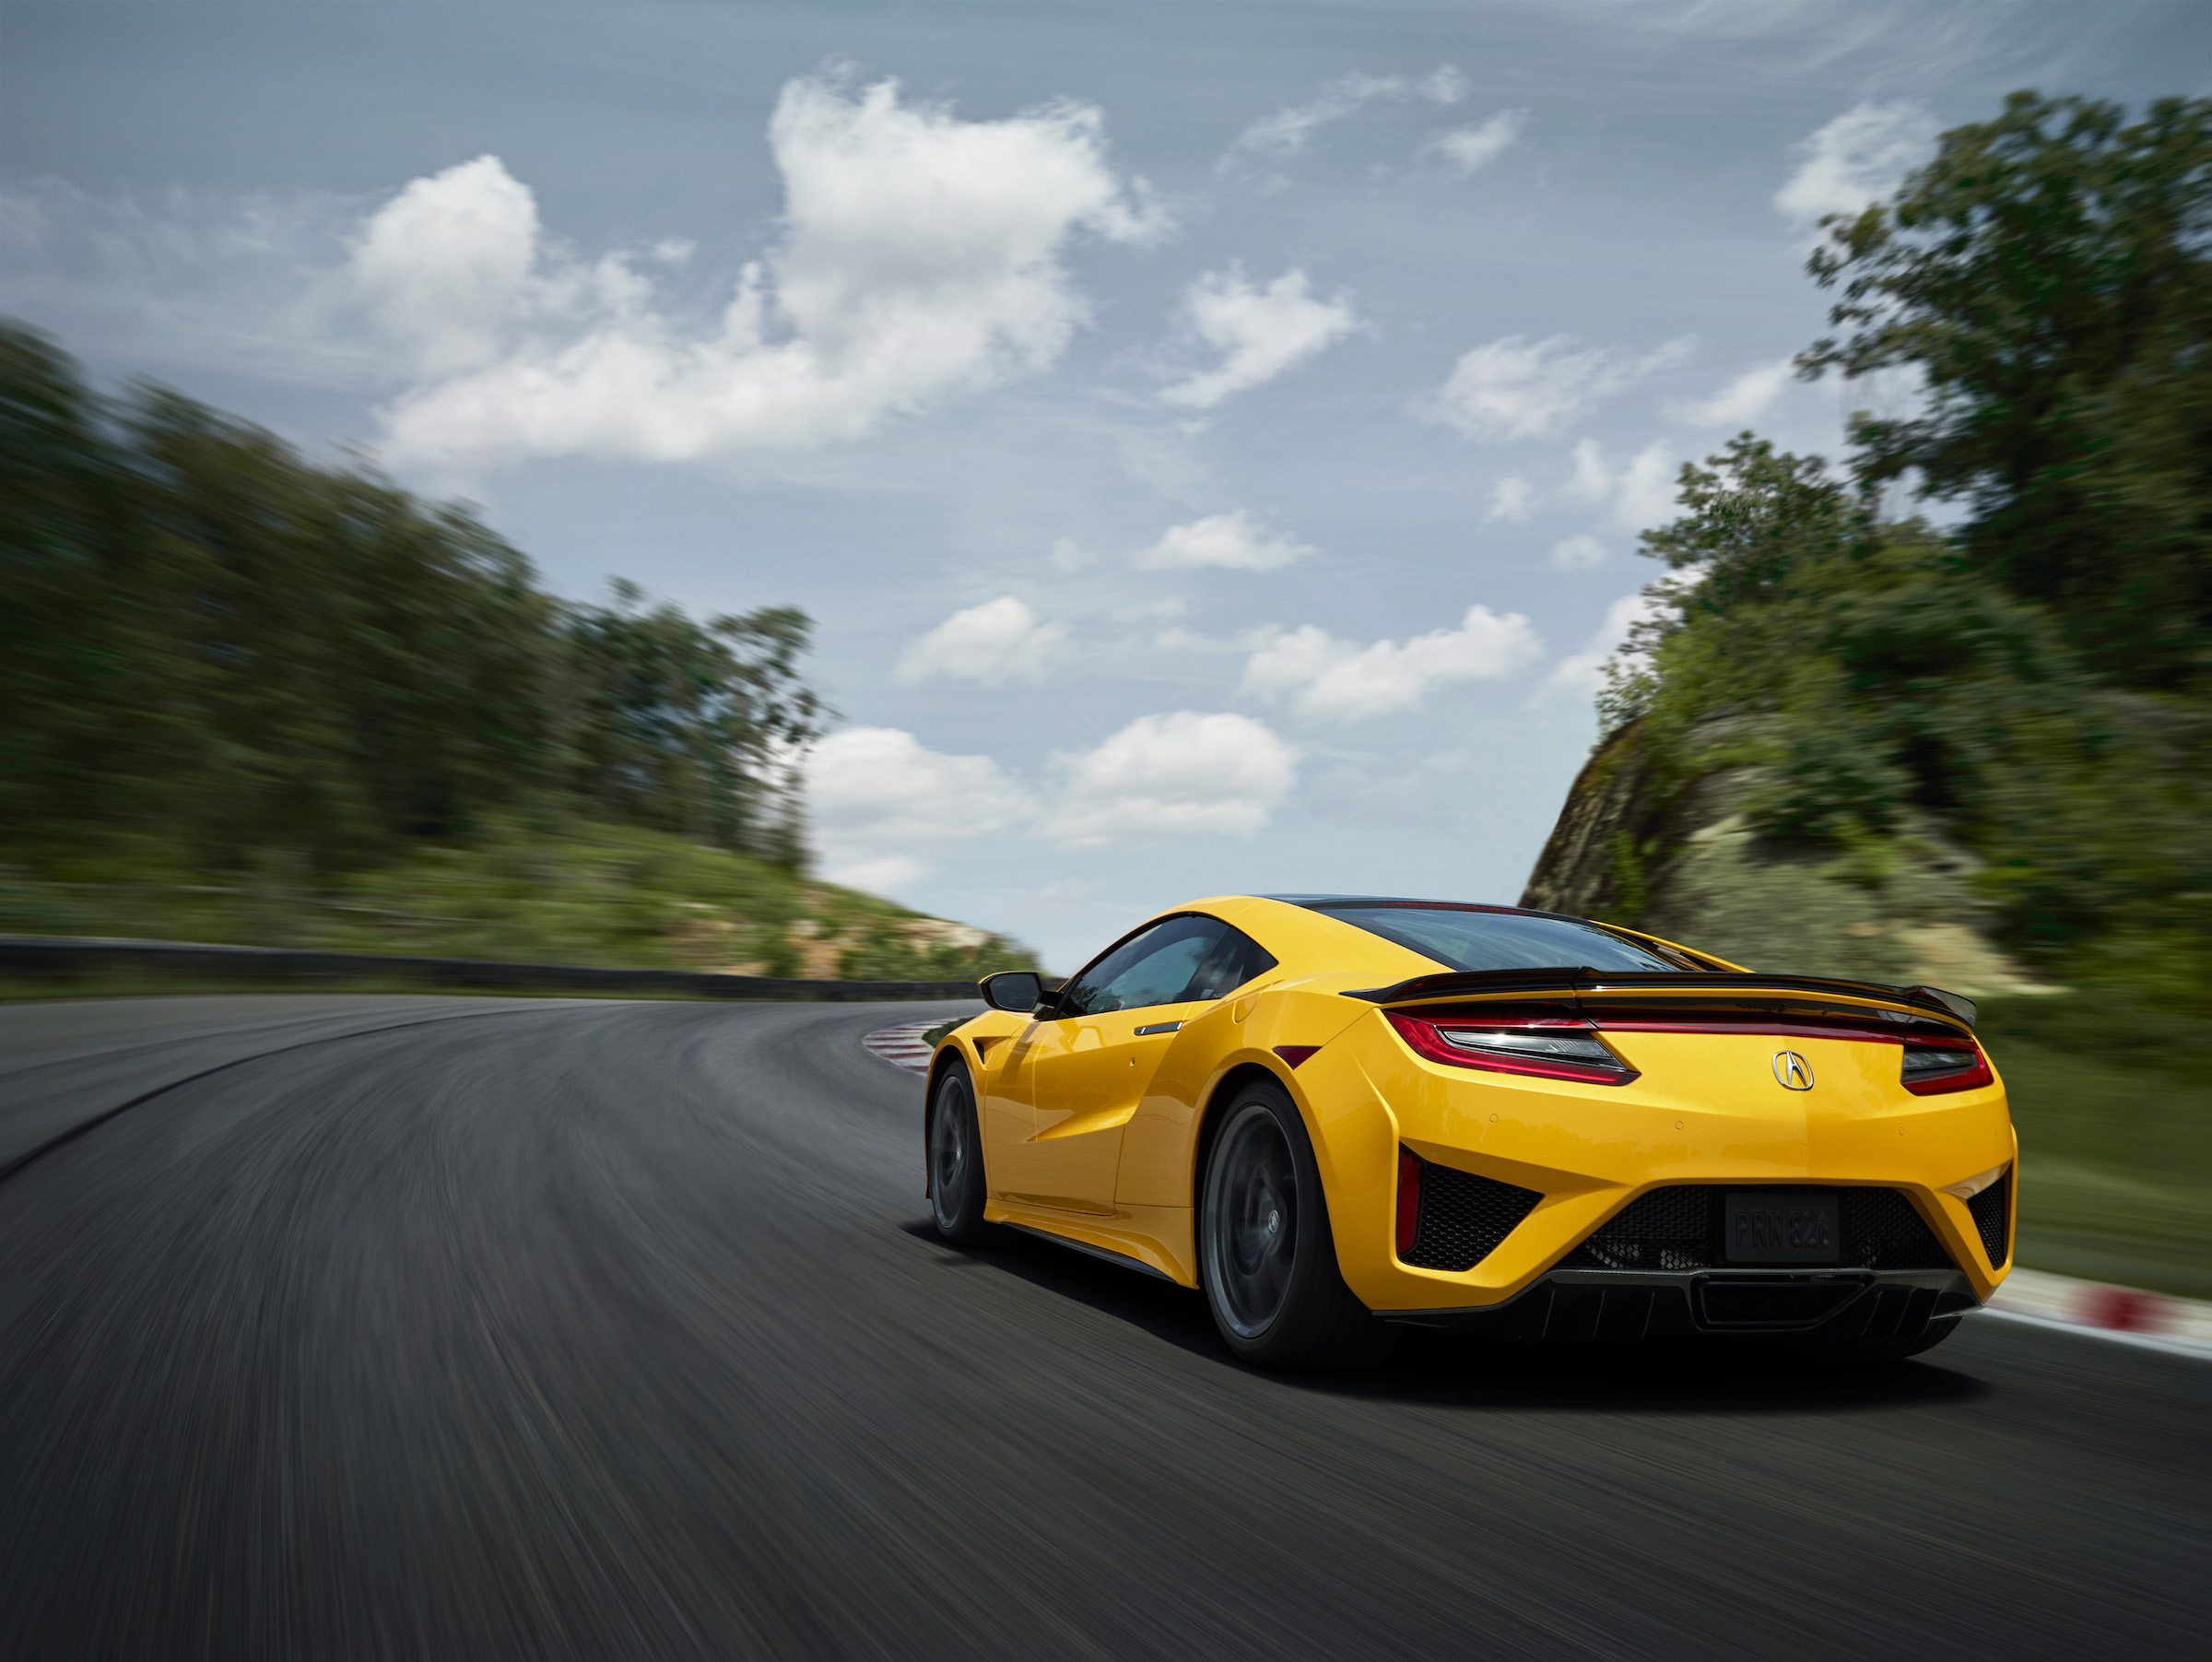 News Acura Brings Back Yellow Heritage Color To The Nsx Japanese Nostalgic Car